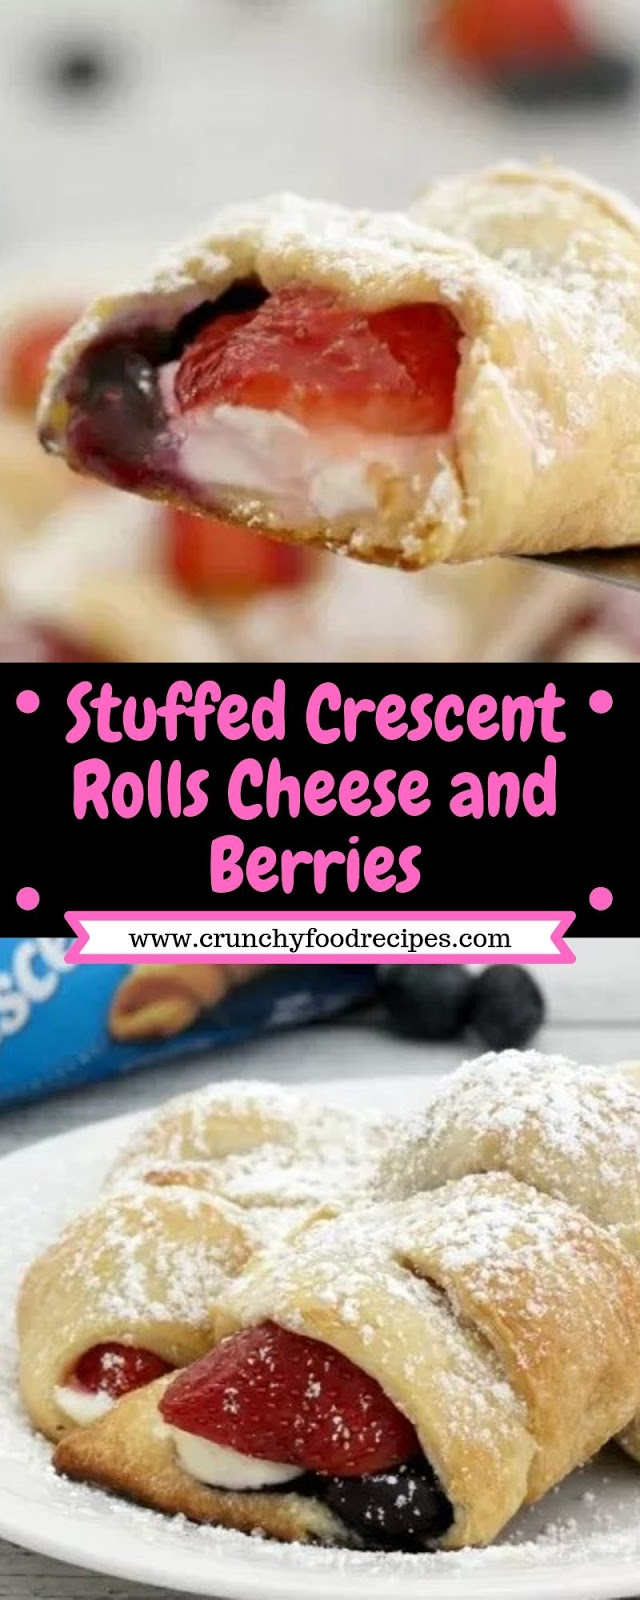 Stuffed Crescent Rolls Cheese and Berries